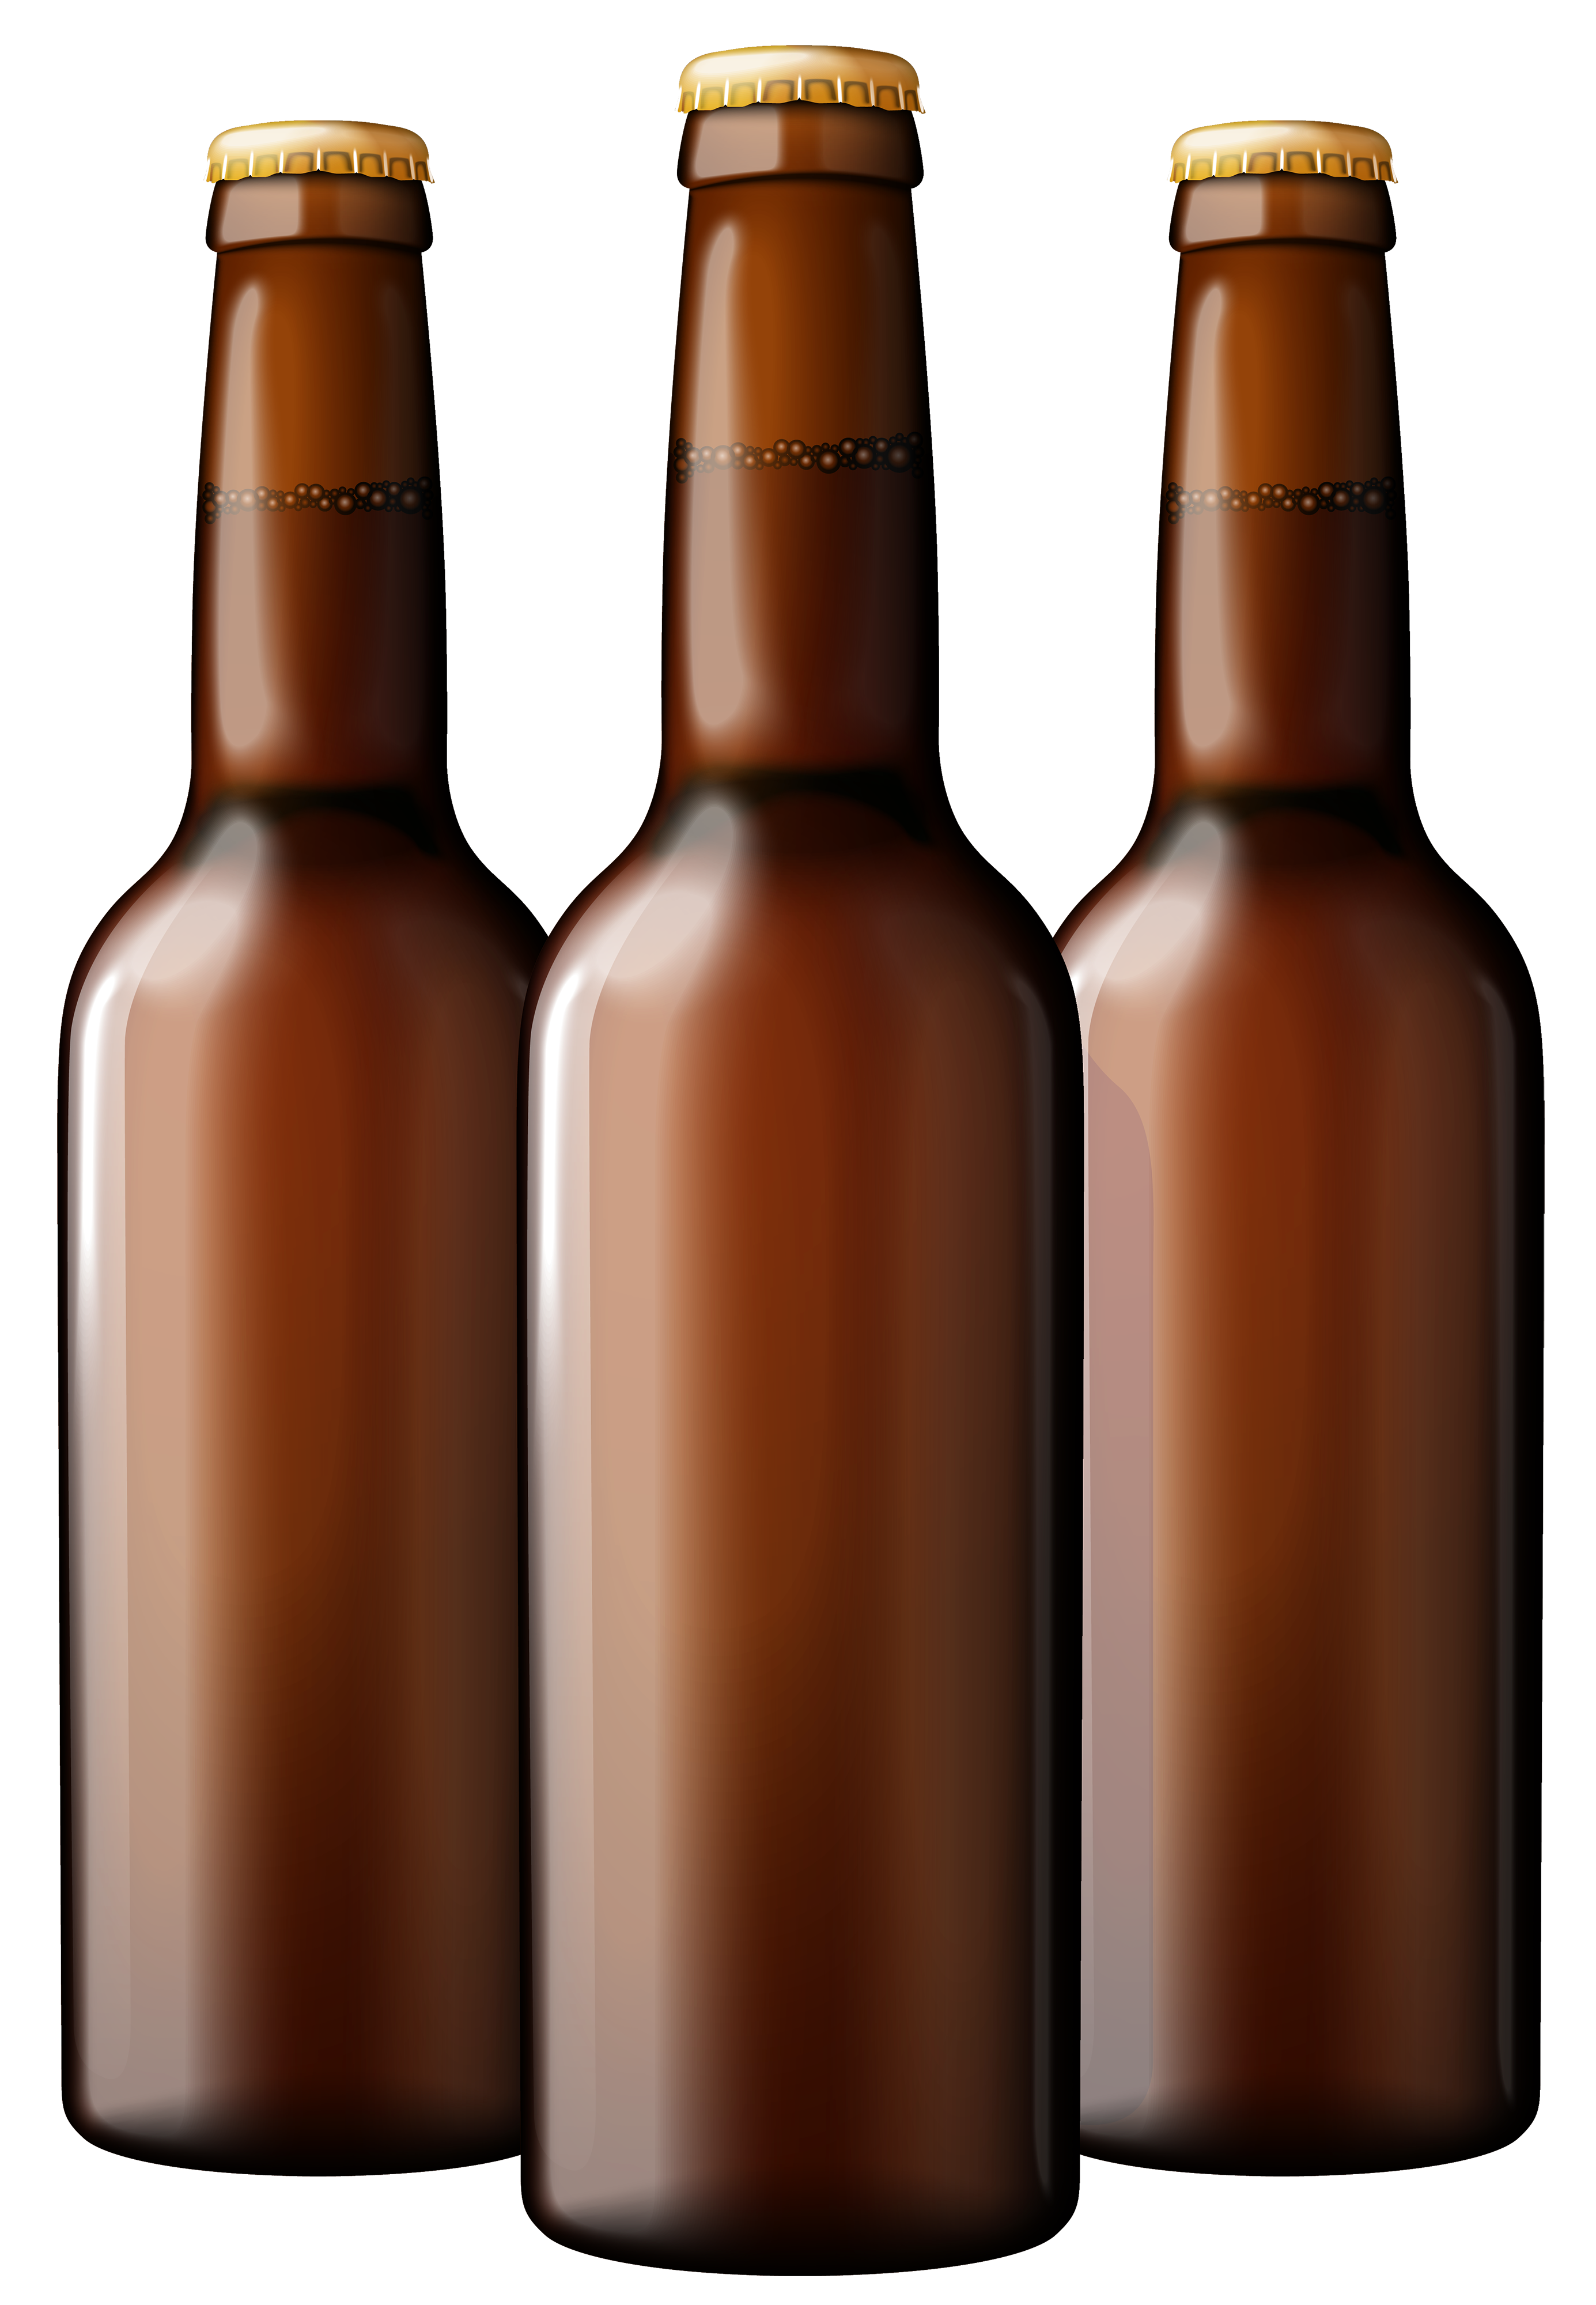 Beer bottle clip art png. Brown bottles clipart best